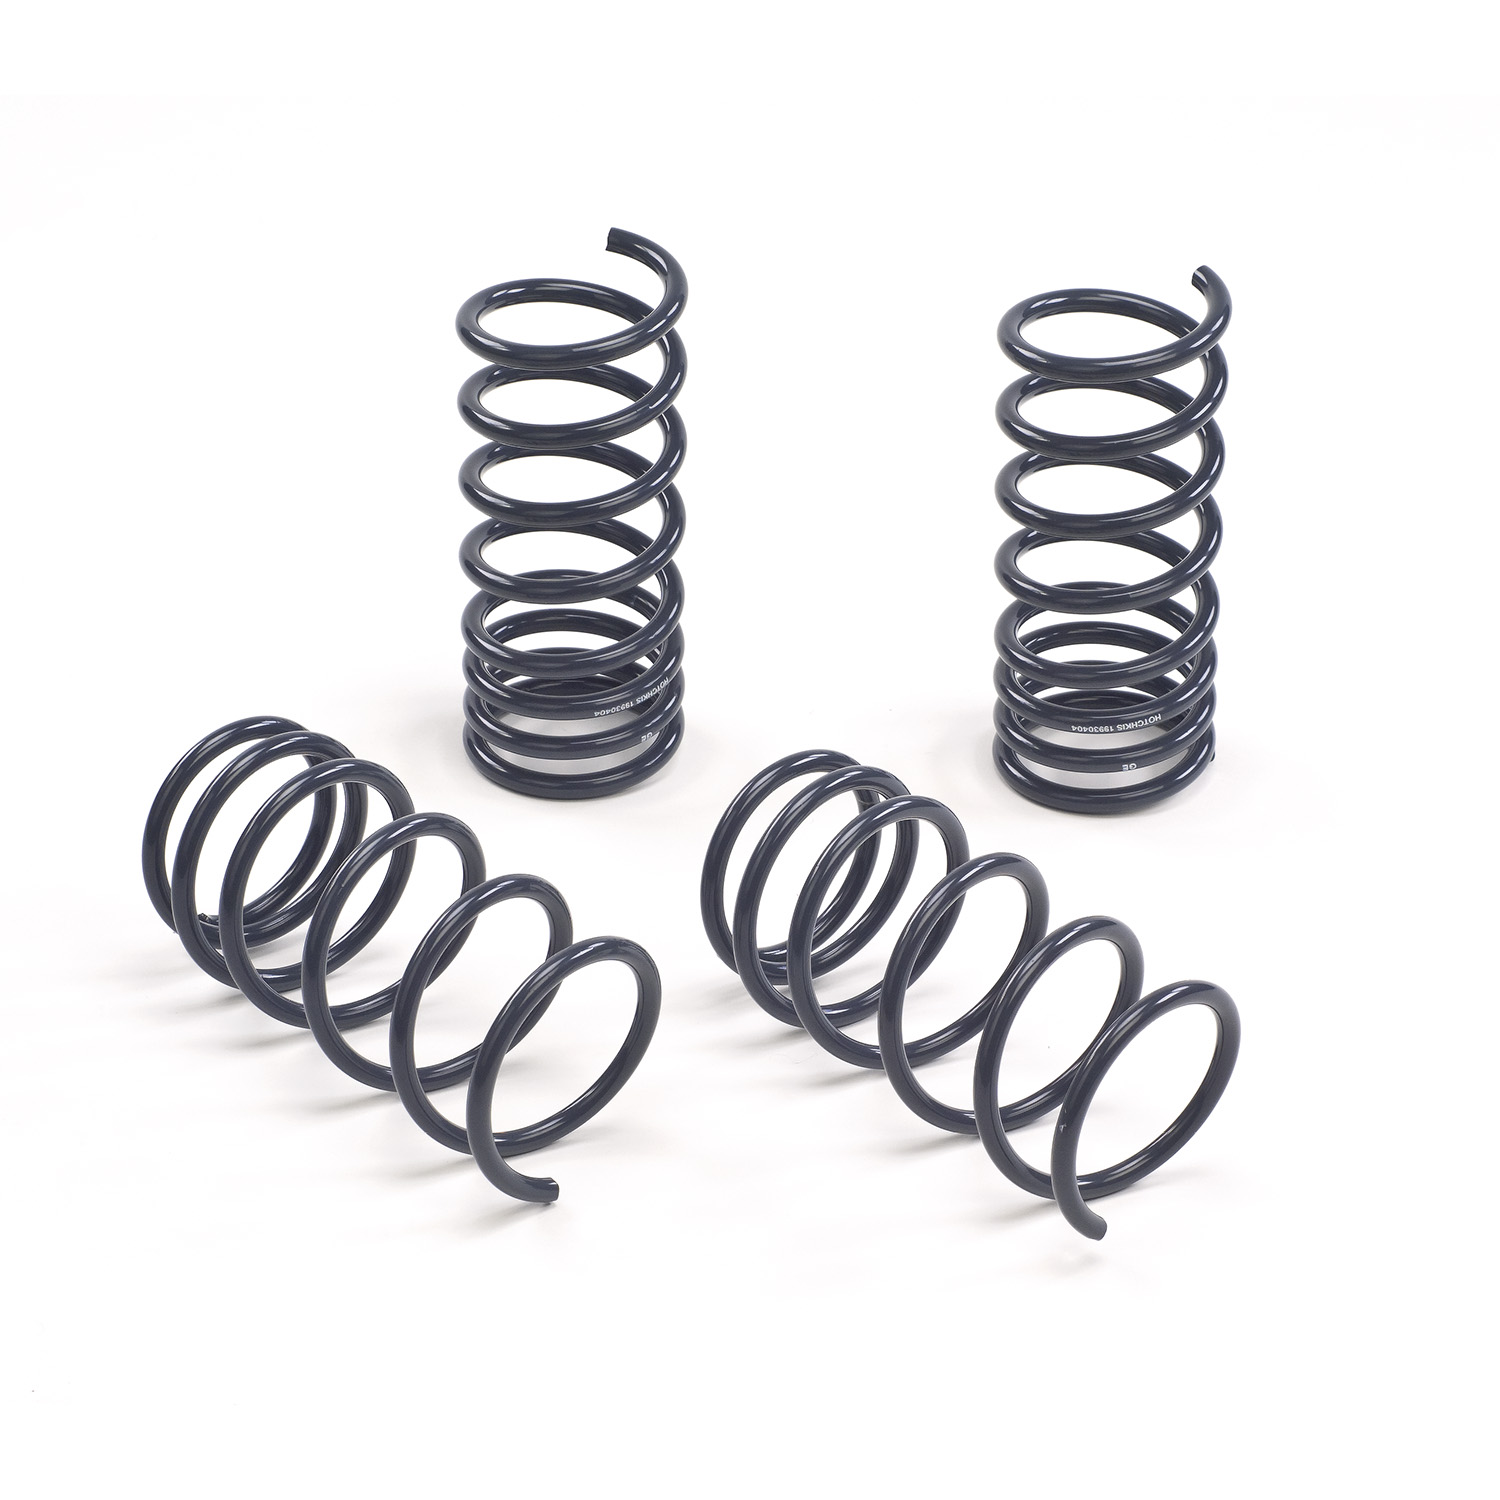 Hotchkis Sport Coil Spring set for 2013 Scion FRS and 2013 Subaru BRZ  lower 1in